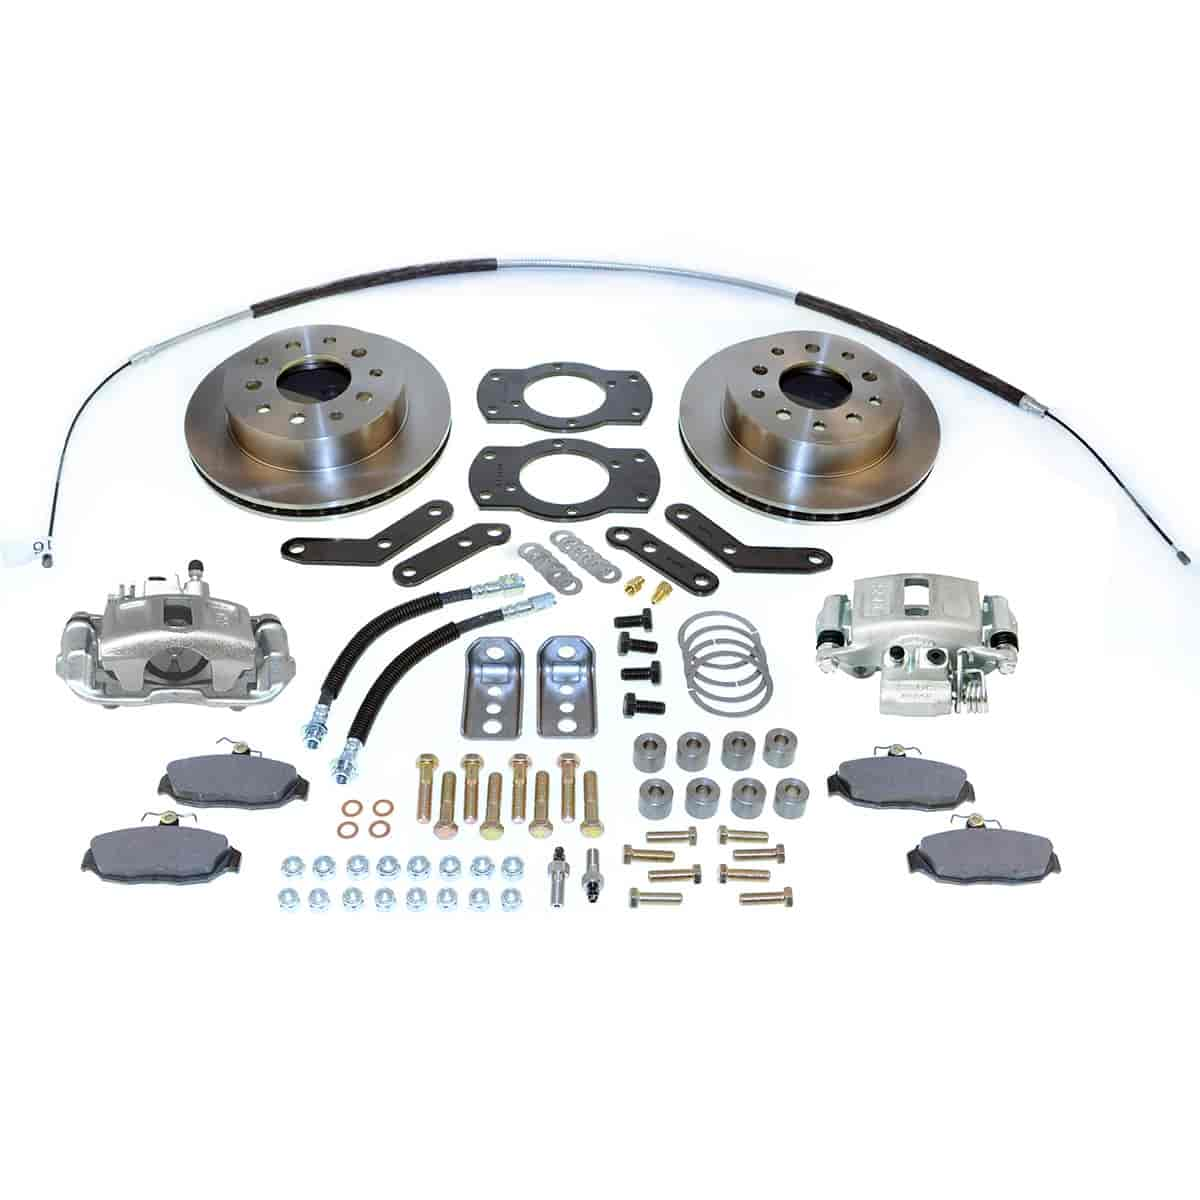 SSBC A125-2 - Stainless Steel Brakes Single Piston Rear Disc Brake Conversion Kit